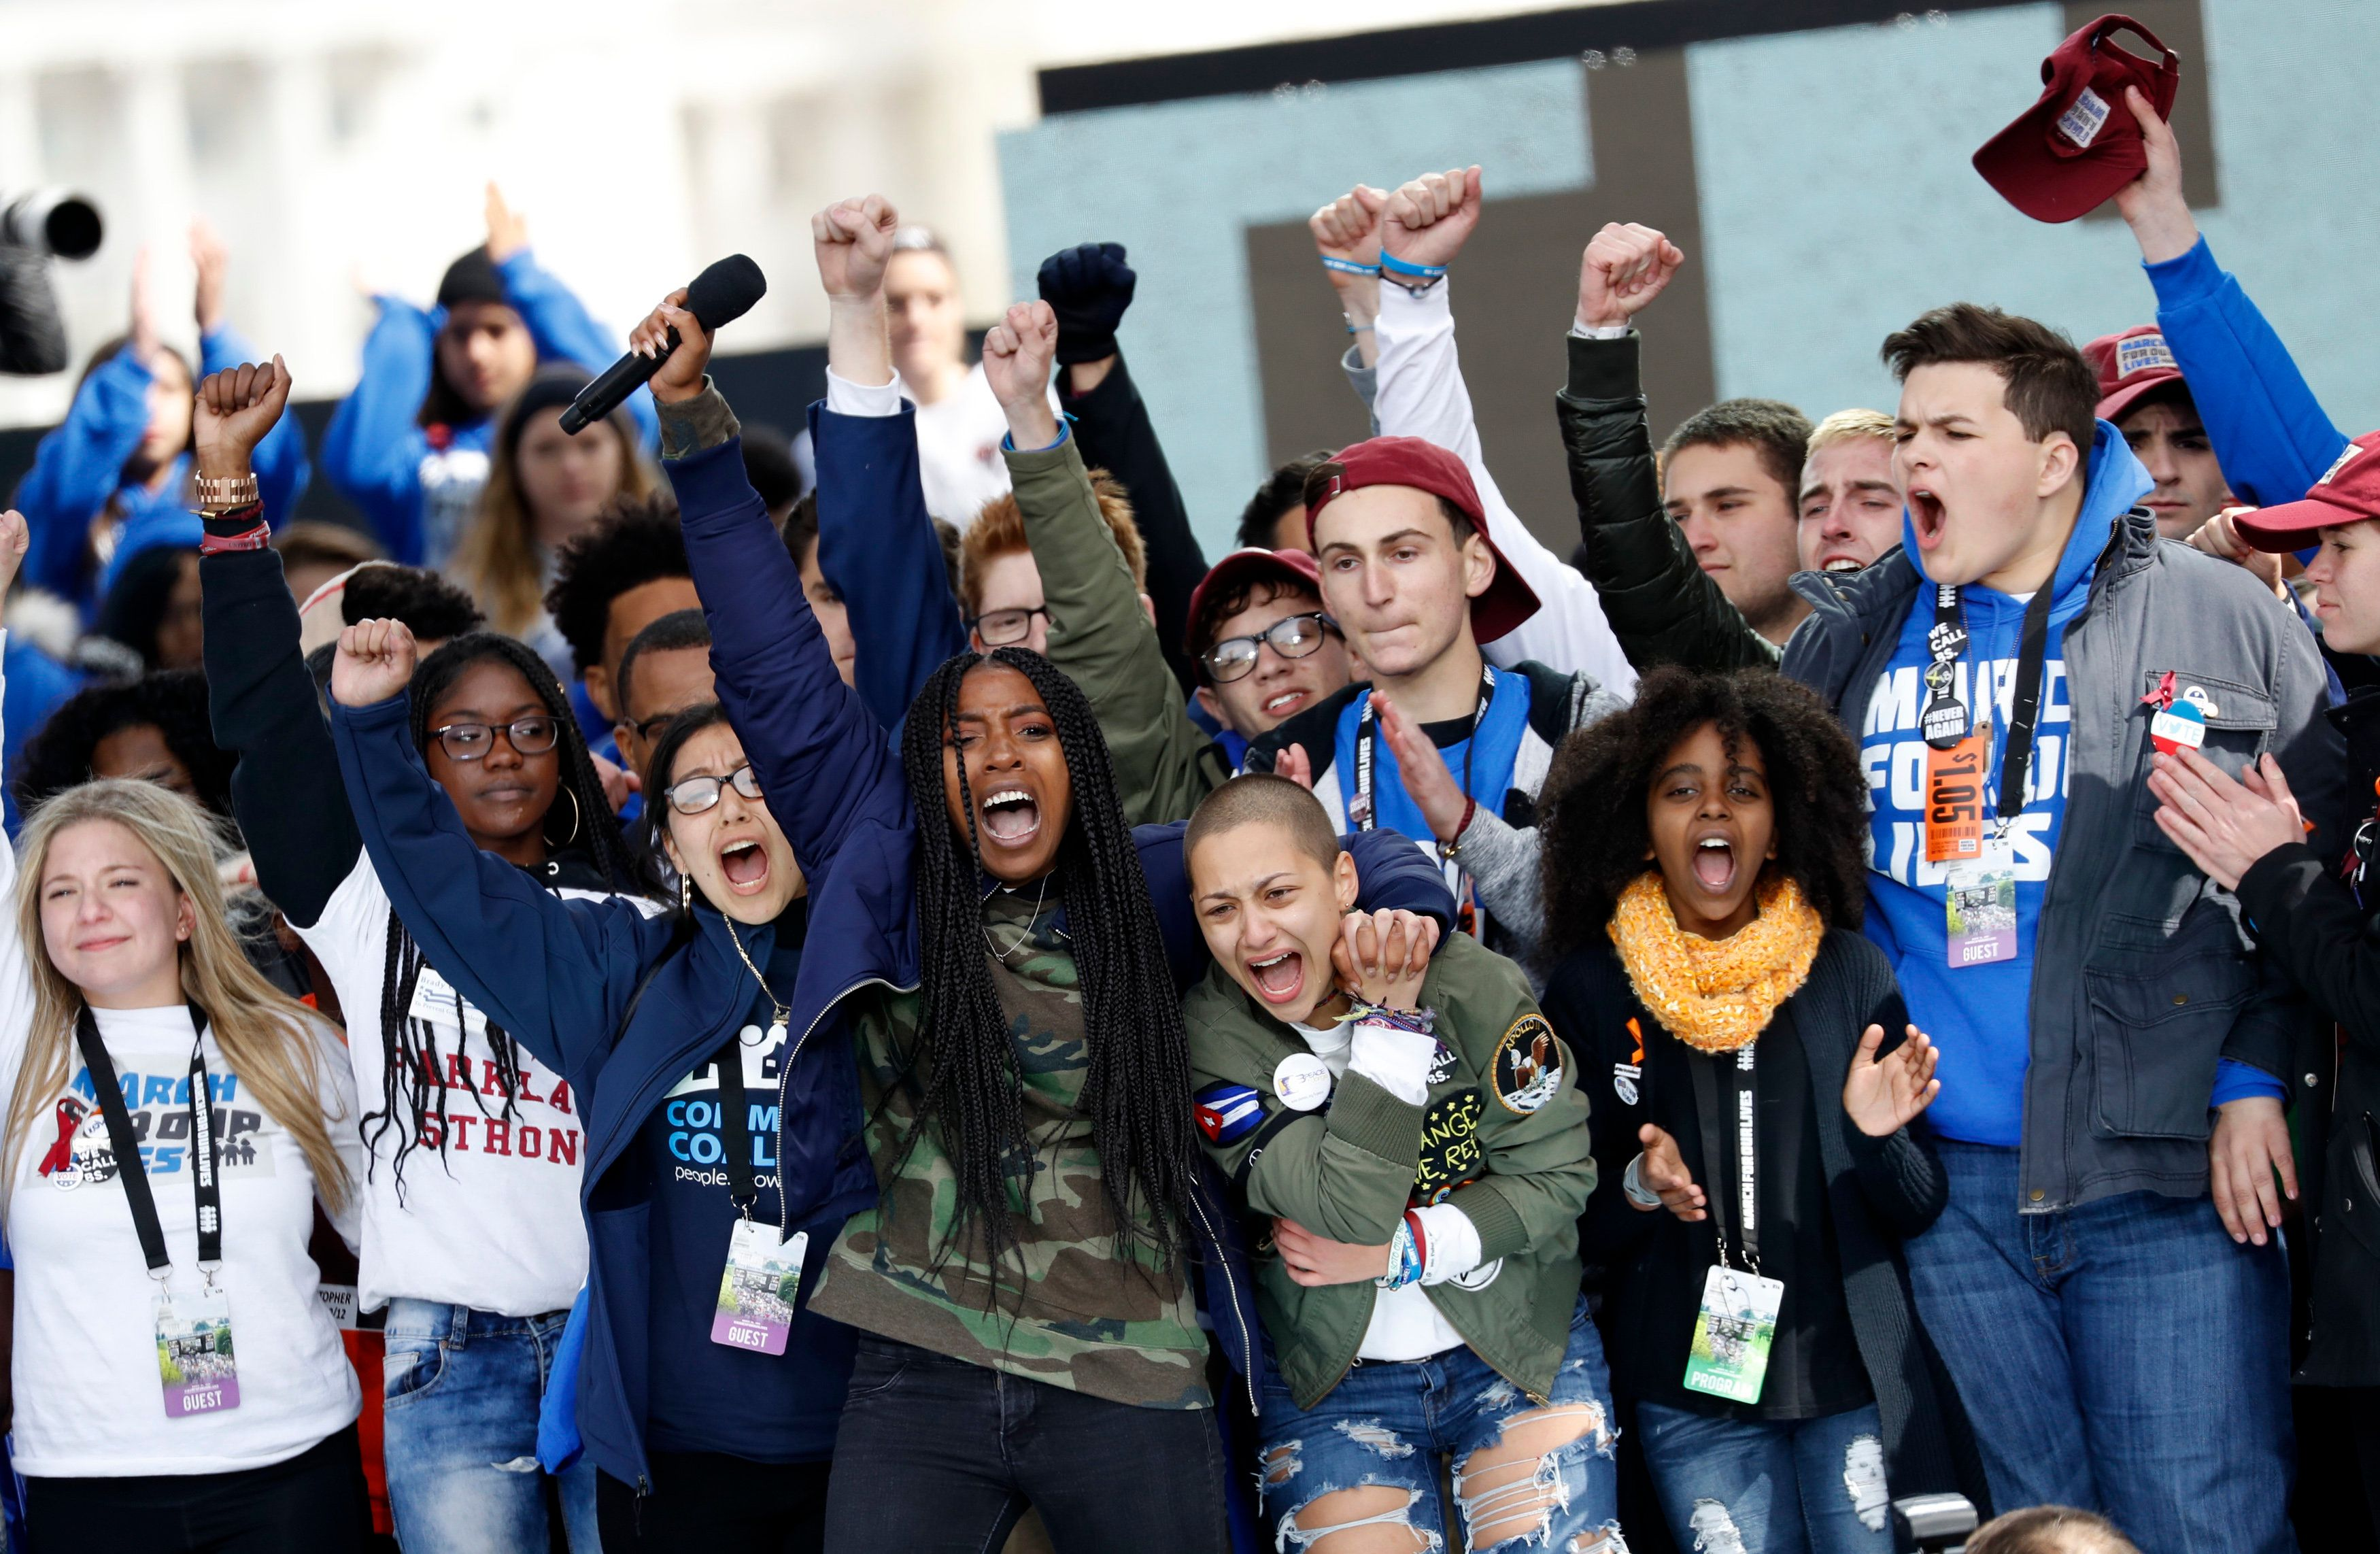 """Shooting survivors Tyra Hemans (center, L) and Emma Gonzalez (3rd from R), from Marjory Stoneman Douglas High School in Parkland, Florida, lead the cheers along with 11-year-old Naomi Wadler of Alexandria, Virginia (2nd R) at the conclusion of the """"March for Our Lives"""" event demanding gun control after recent school shootings at a rally in Washington, U.S., March 24, 2018. REUTERS/Aaron P. Bernstein"""